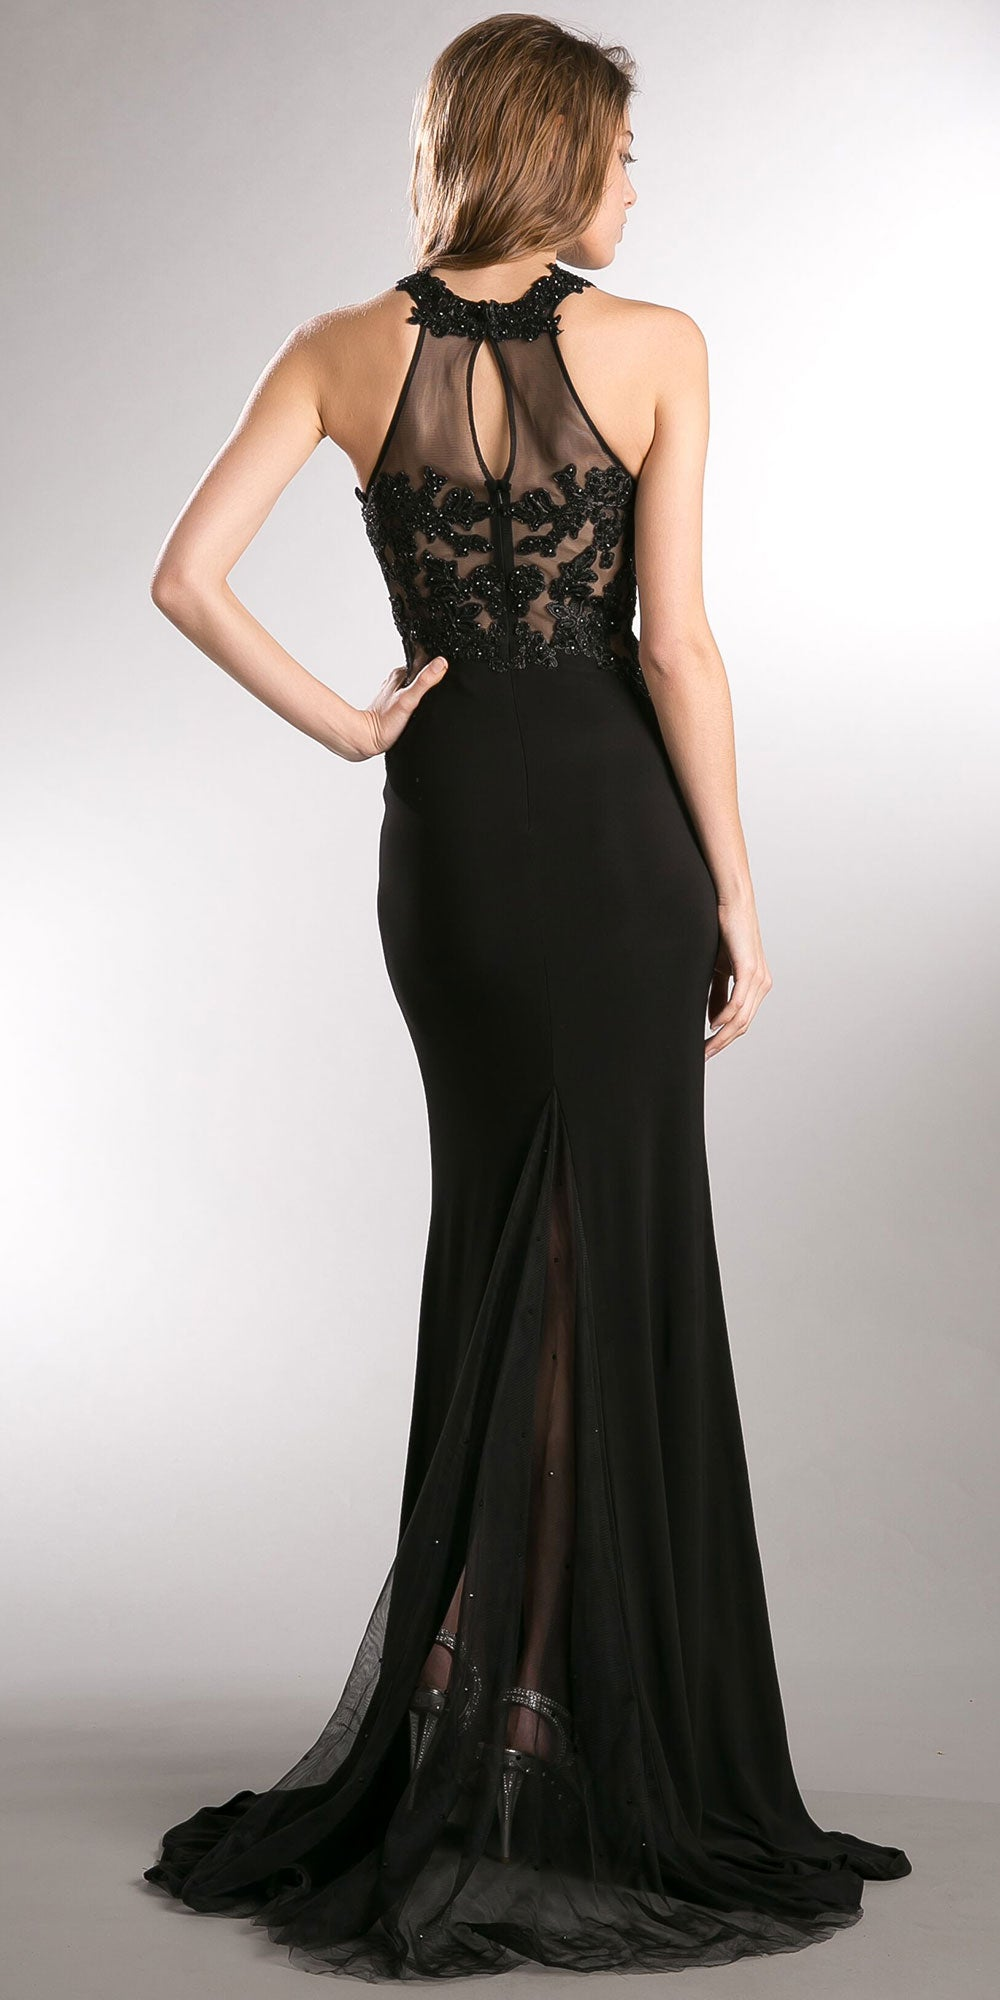 Image of Beaded Lace & Mesh Bodice Long Prom Pageant Dress back in Black